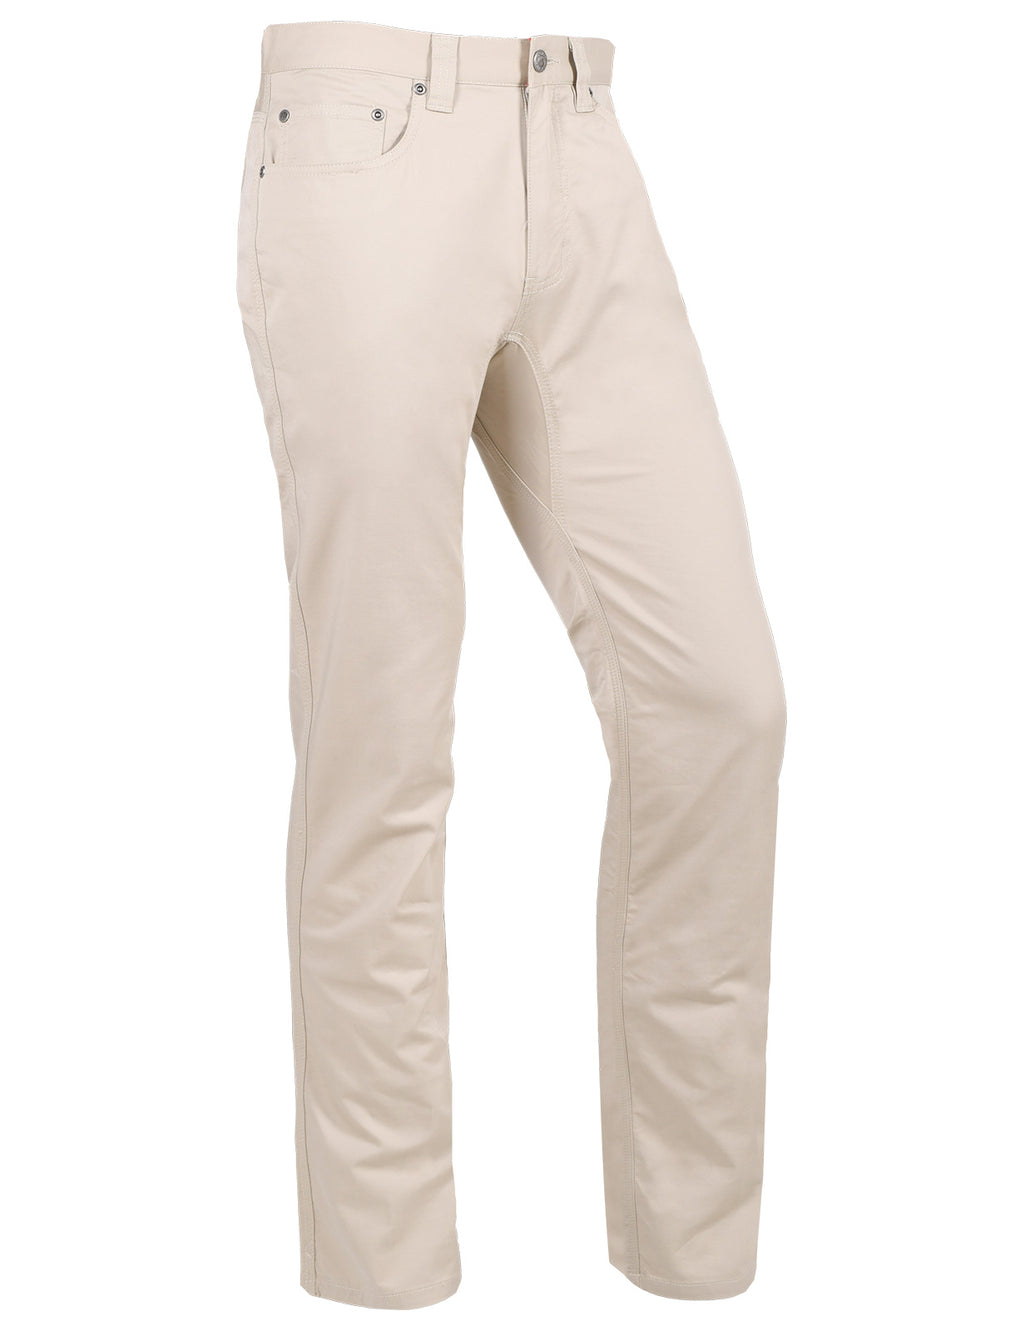 LoDo Pant | Mountain Khakis. Cotton-nylon-spandex twill weave pant with action gusset and reinforced front pocket bags and triple-stitched seams for maximum durability. The LoDo pant goes from the hiking and camping outdoor lifestyle straight to the office or happy hour.